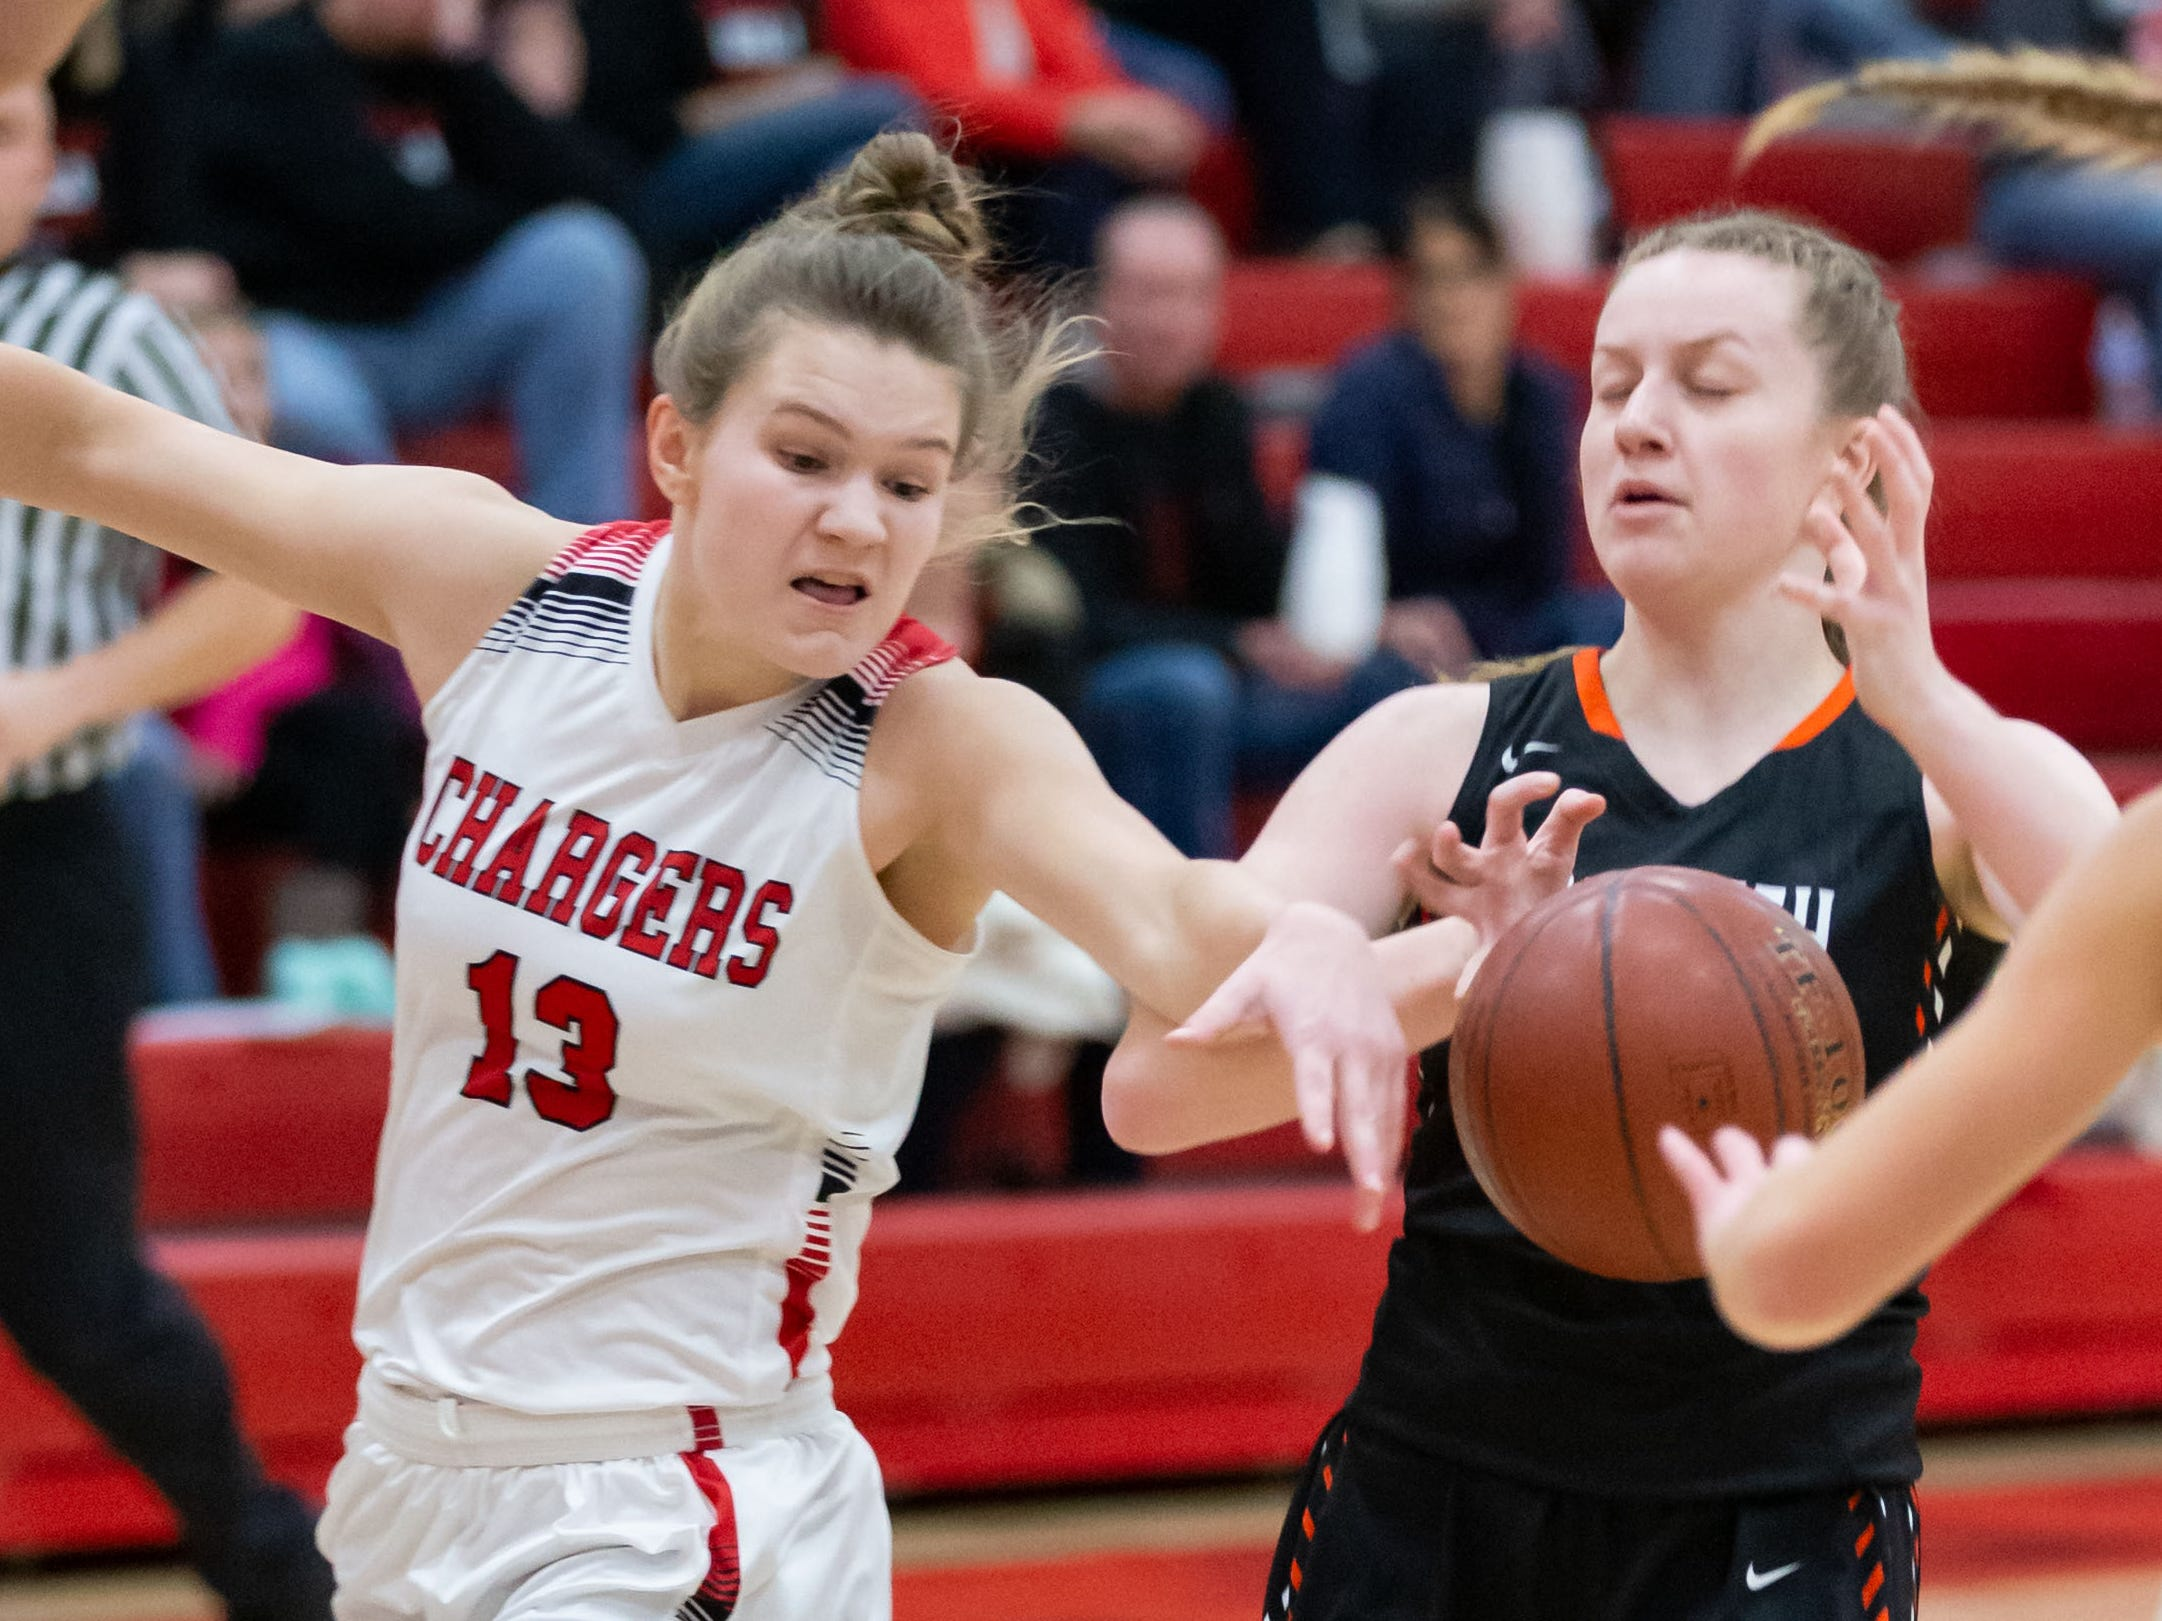 Hamilton senior Elizabeth Behrndt (13) swats the ball away from Plymouth's Alesha Kaat-Fohr (4) during the game at Hamilton on Tuesday, Dec. 4, 2018.